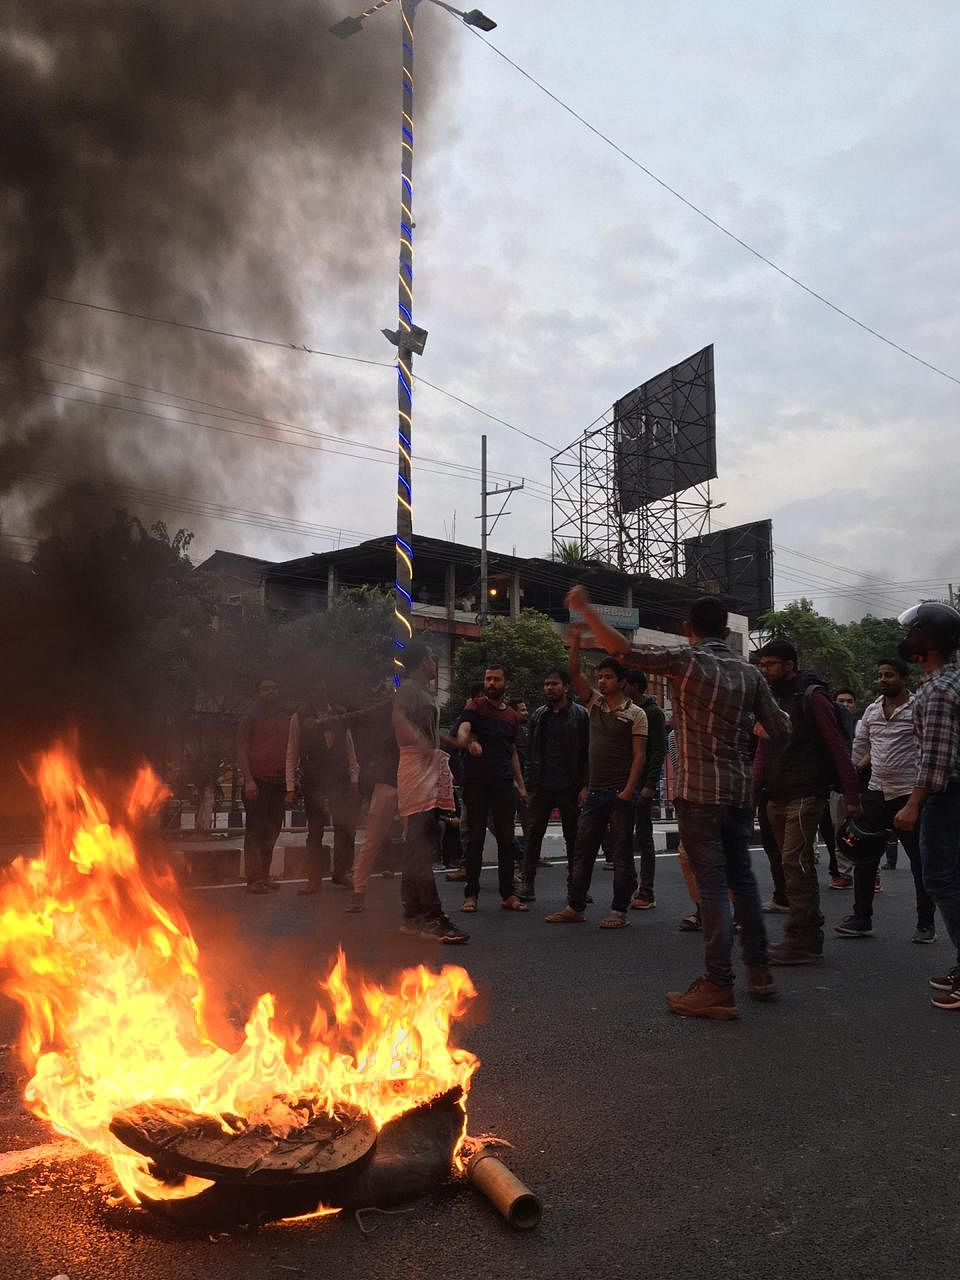 Indefinite curfew had to be imposed in Guwahati after protests took a violent turn by Wednesday evening